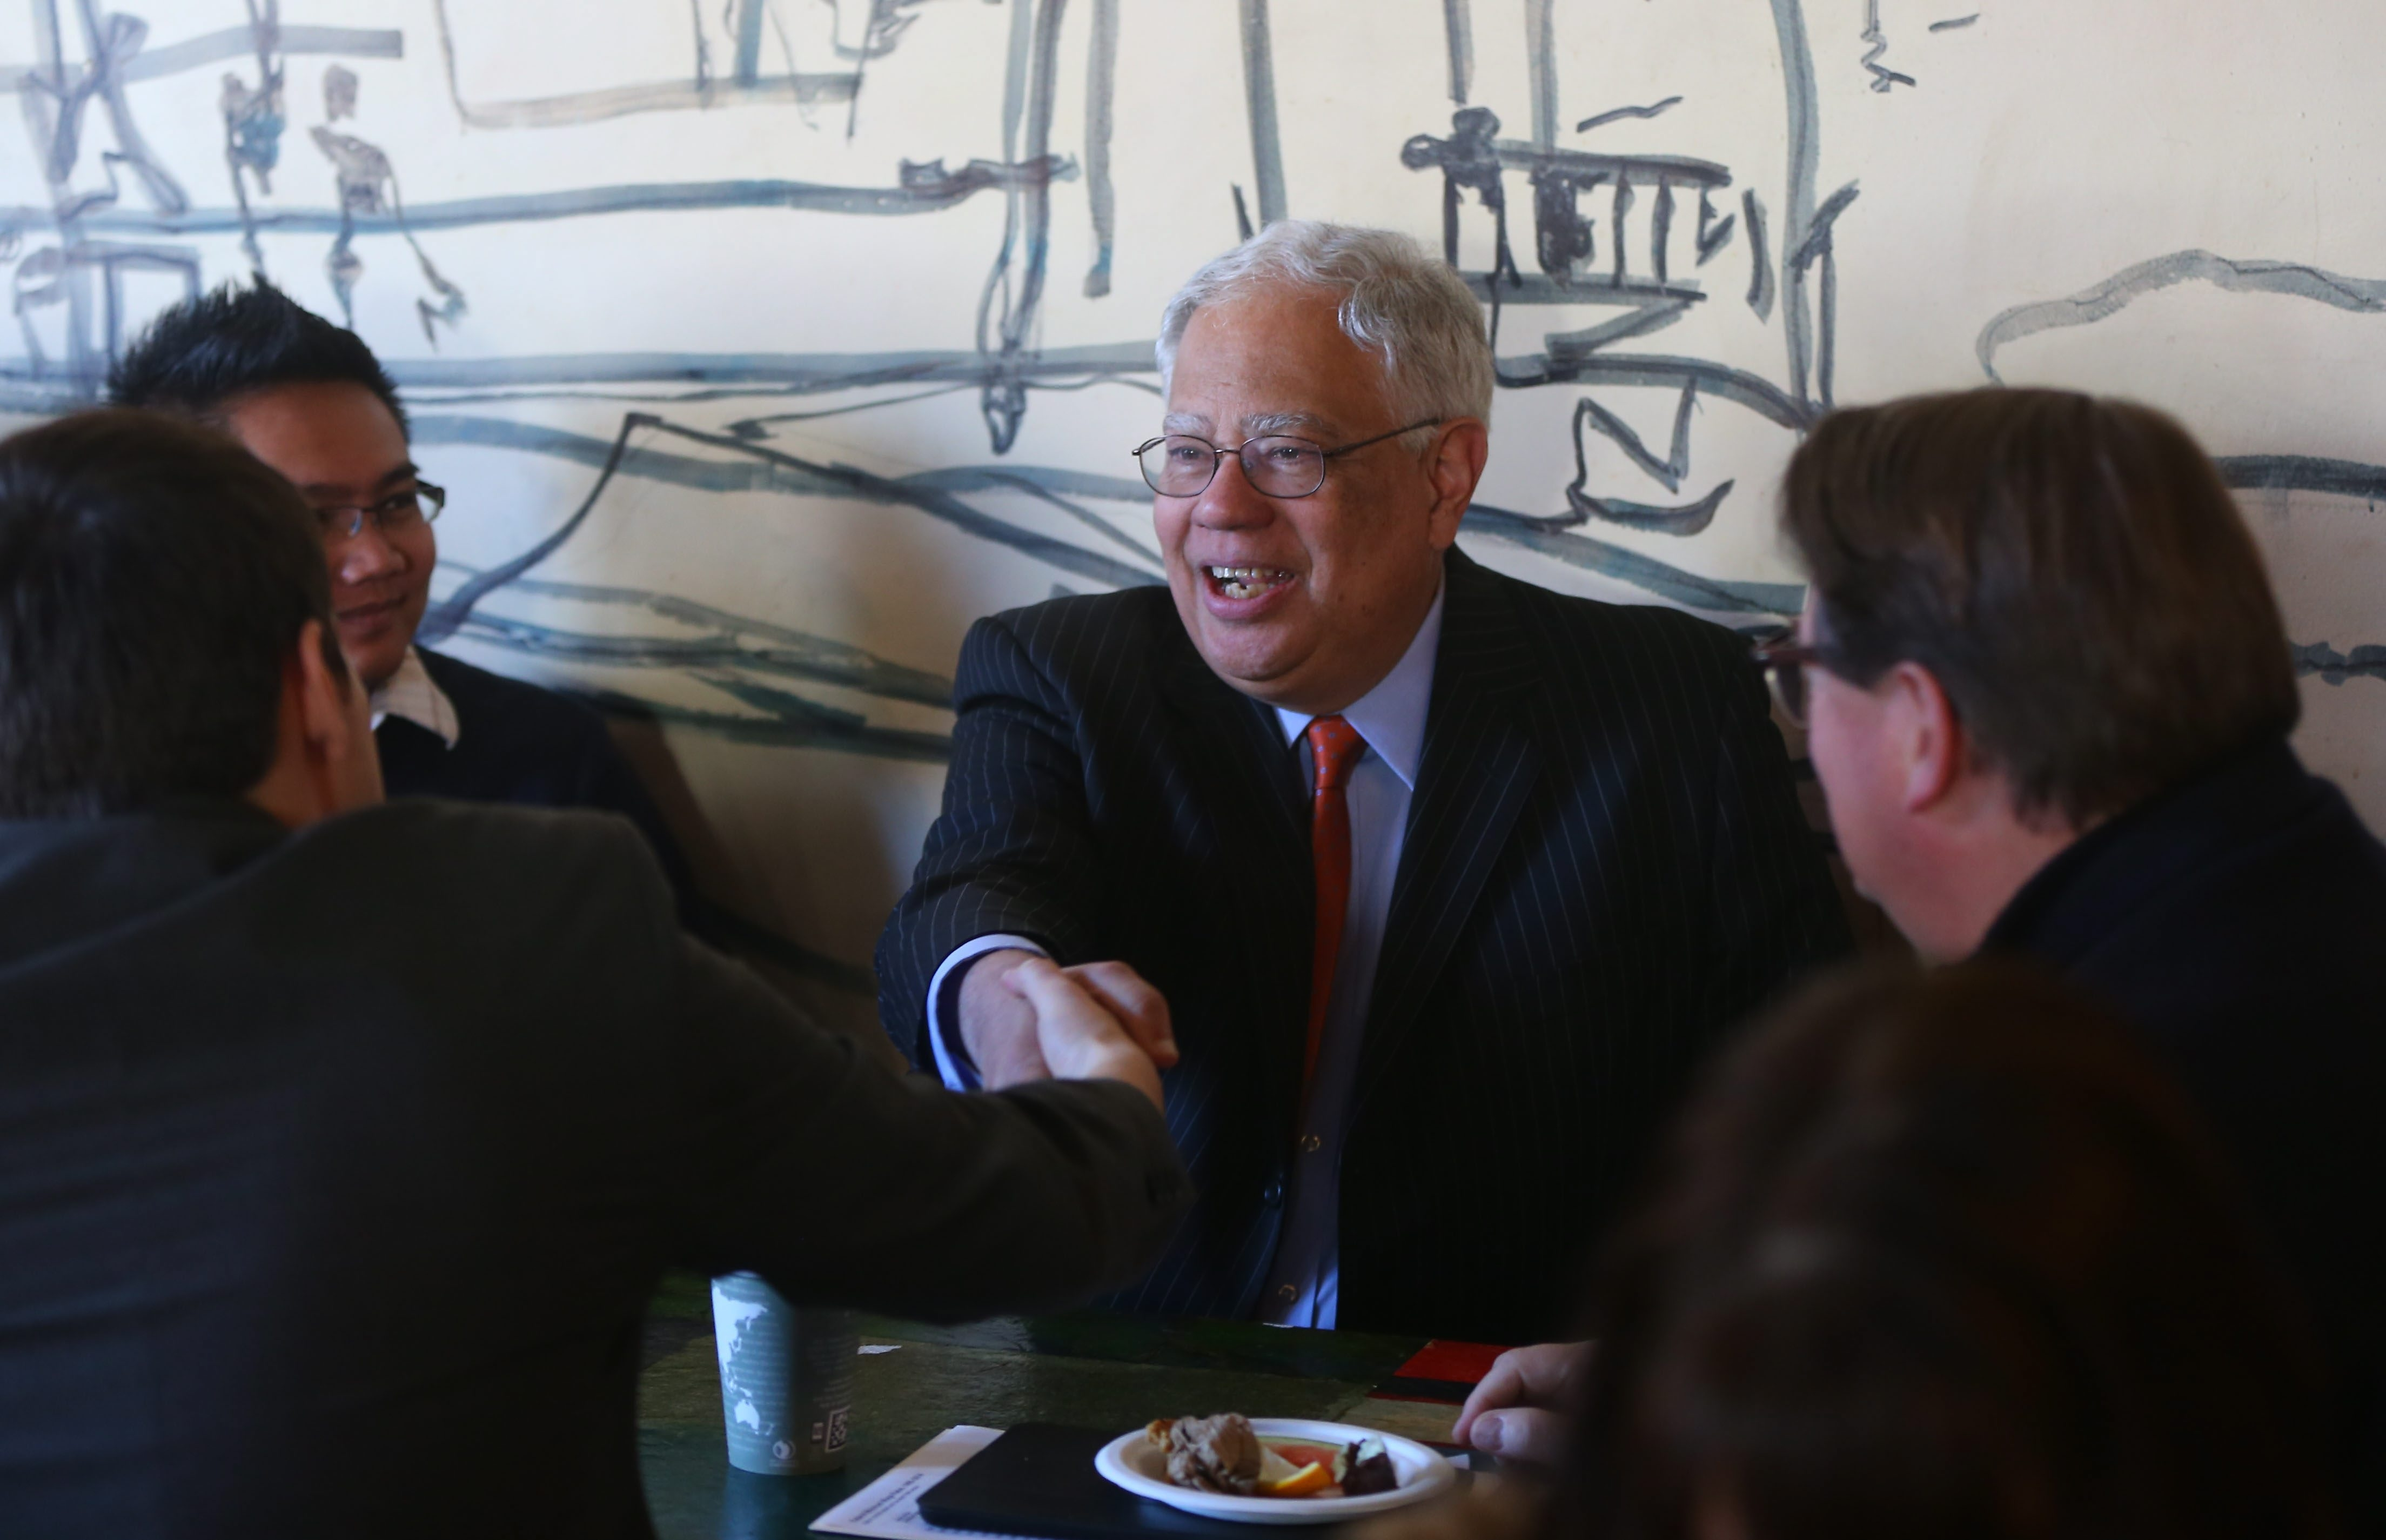 Secretary of State Cesar Perales discusses the minimum wage proposal at Sweet_ness 7 Café in Buffalo.